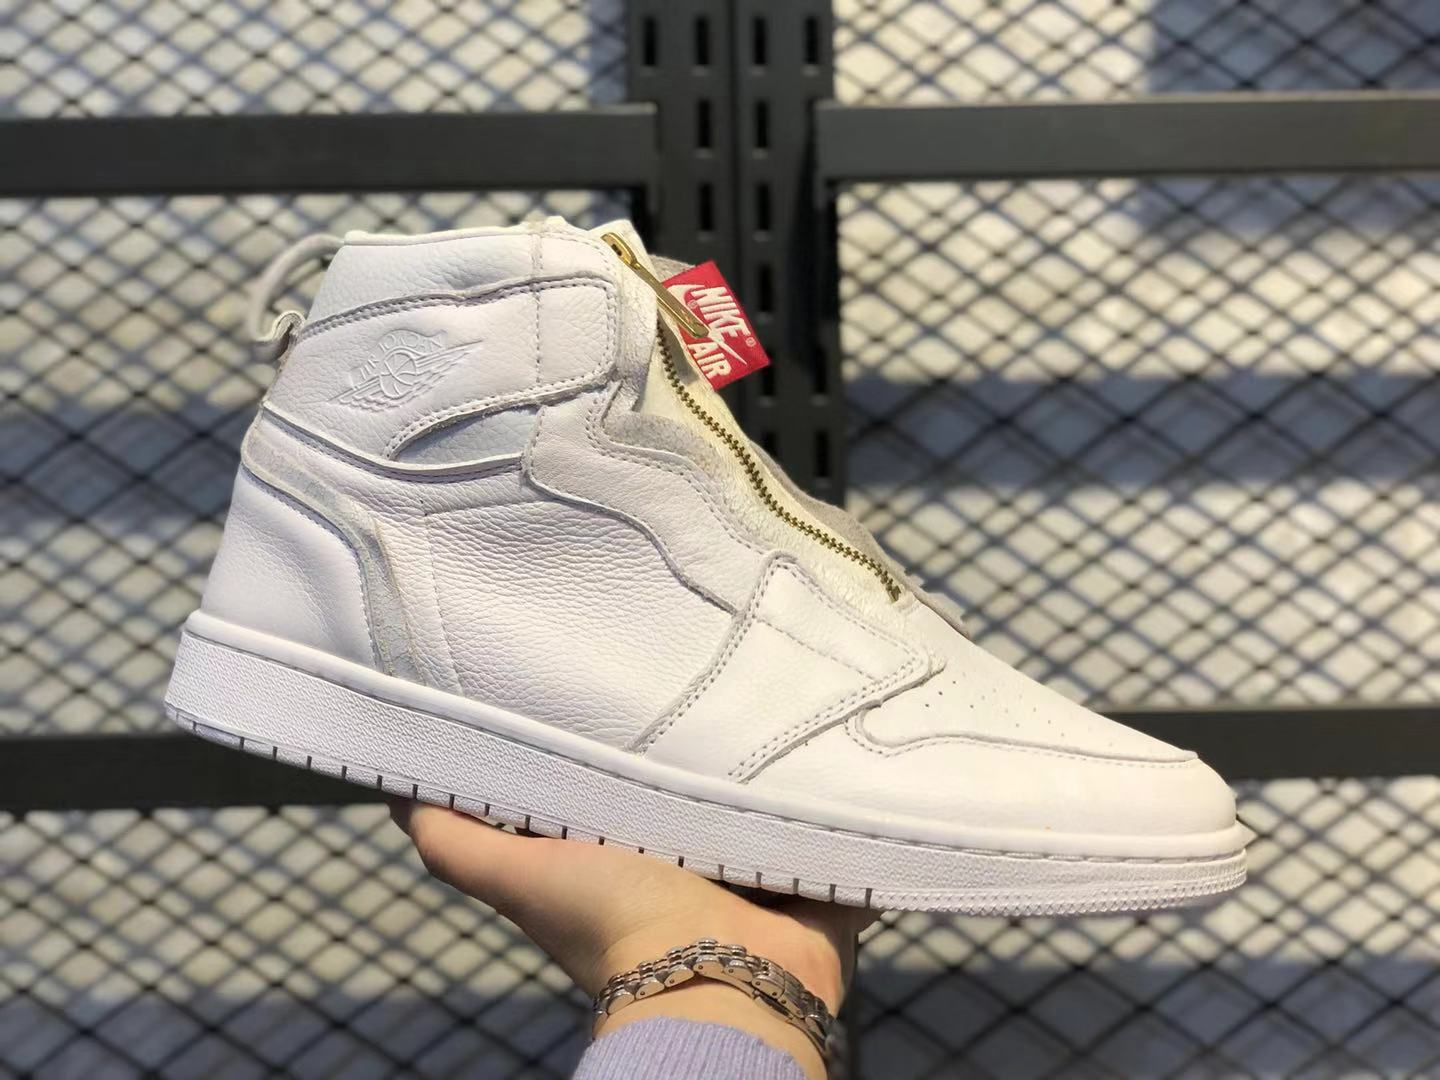 Air Jordan 1 High Zip AWOK Vogue White/University Red Top Shoes For Sale